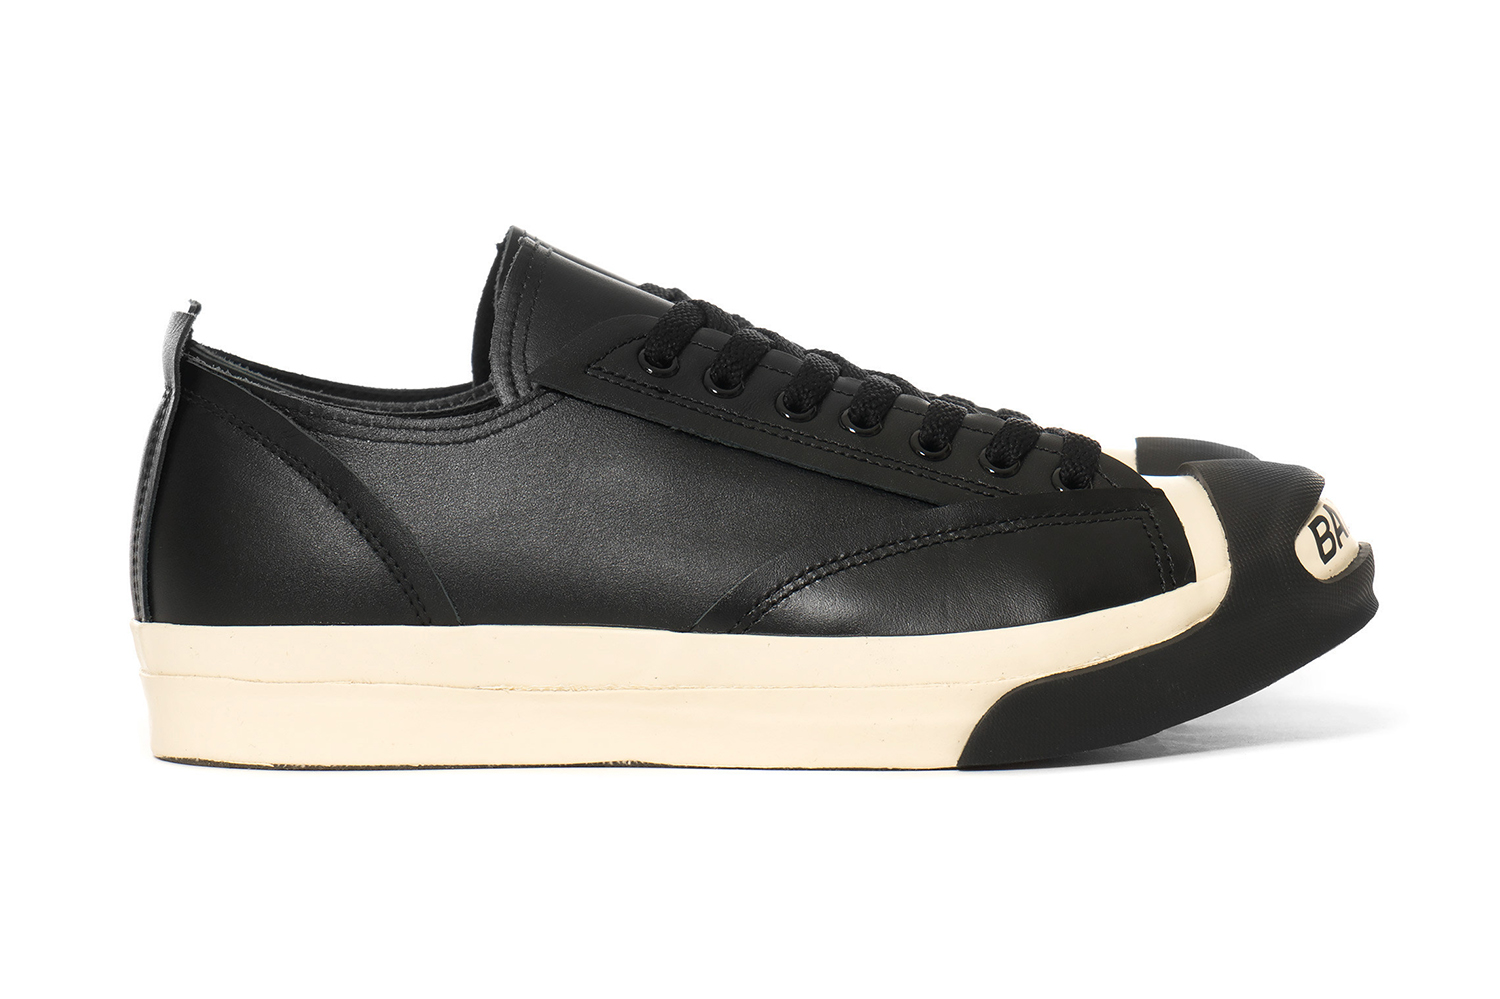 UNDERCOVER Balances Chaos With Its Take on the Jack Purcell